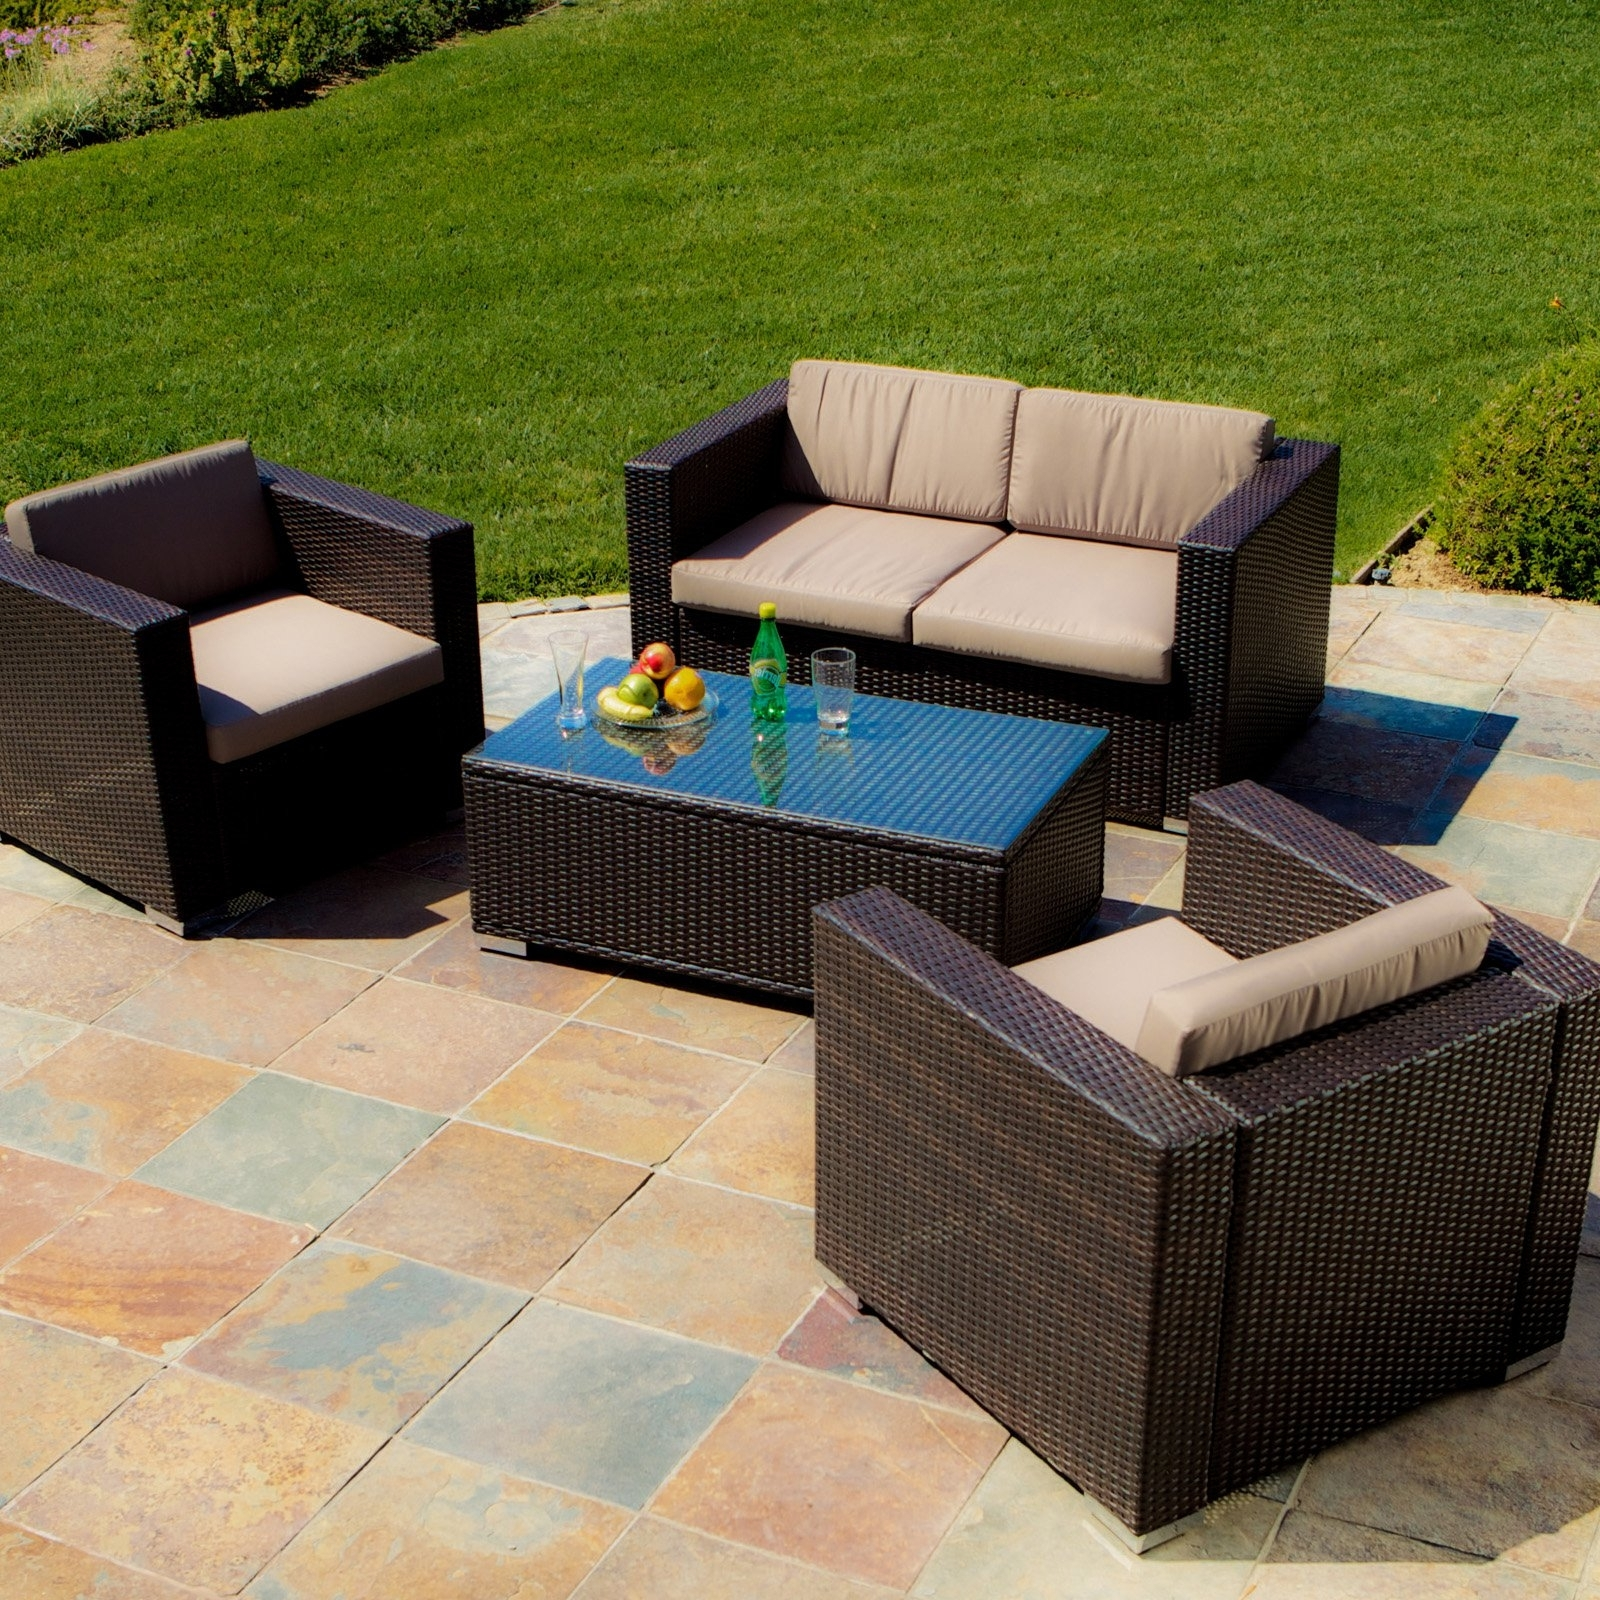 2019 Patio Conversation Sets Without Cushions For Patio Furniture All Weatheratio Coversall Without Cushions Wicker No (View 17 of 20)